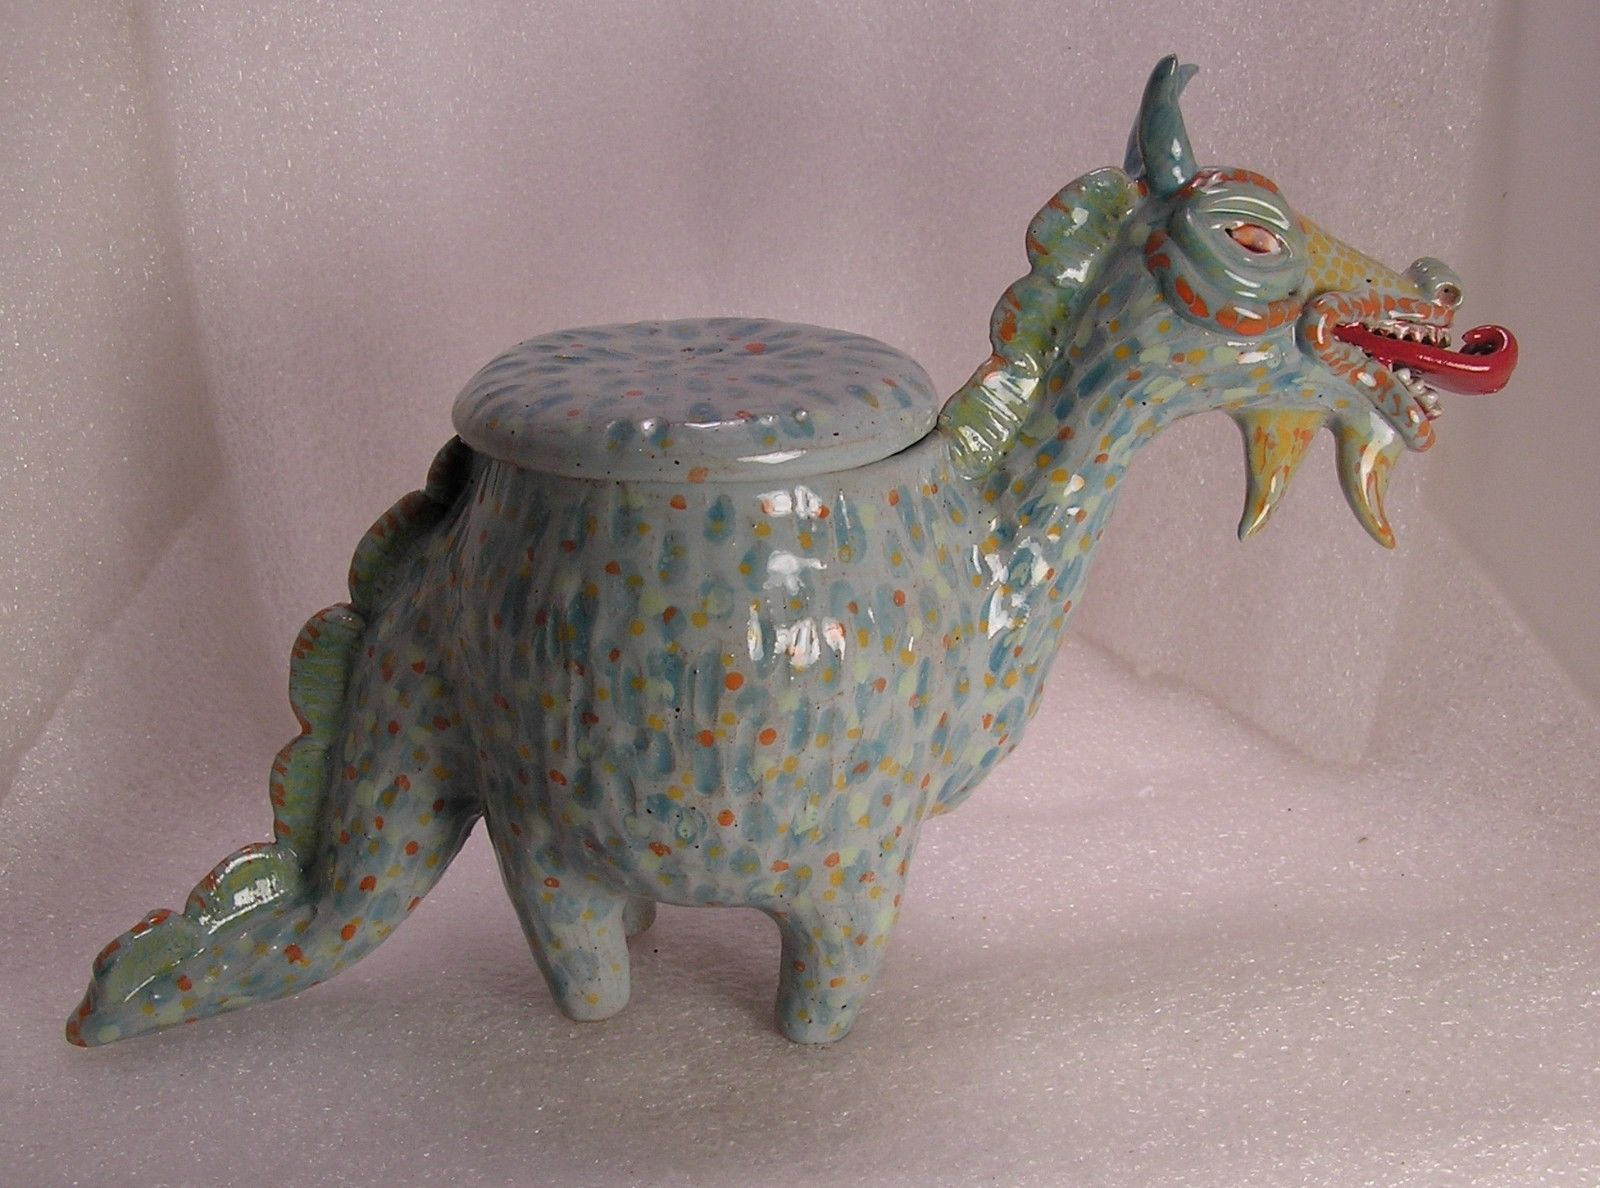 Related pictures split tongue jpg pictures to pin on pinterest - The Forked Tongue Dragon Folk Pot Animal Face Jug Effigy Jar Herb Caddy